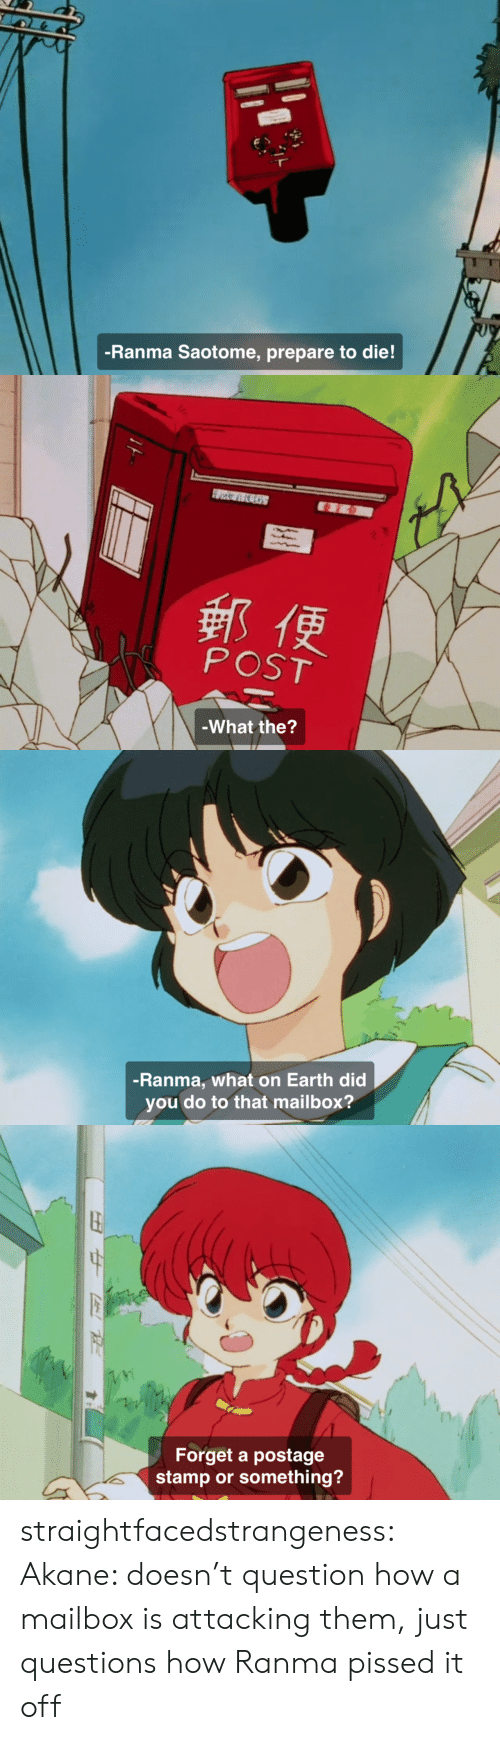 Target, Tumblr, and Blog: -Ranma Saotome, prepare to die!   郵便  POST  -What the?   -Ranma, what on Earth did  you do to that mailbox?   Forget a postage  stamp or something? straightfacedstrangeness:  Akane: doesn't question how a mailbox is attacking them, just questions how Ranma pissed it off